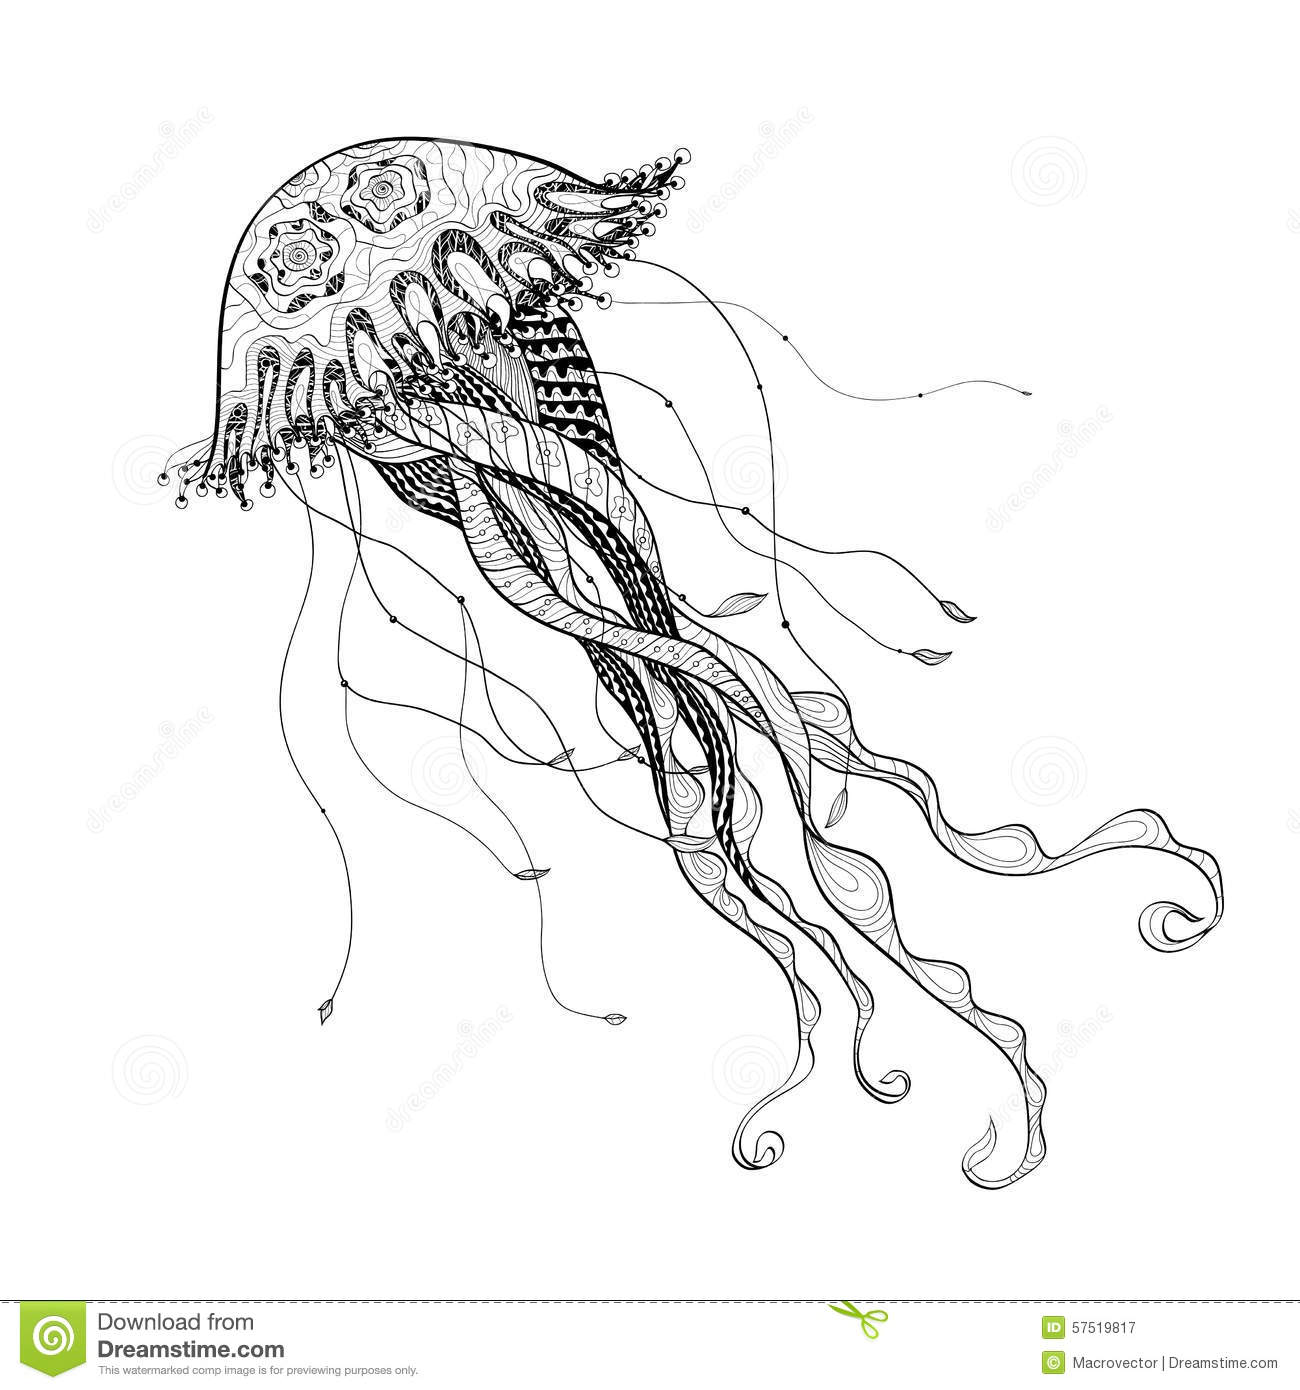 Line Art Poster Design : Doodle sketch medusa jellyfish black line stock vector